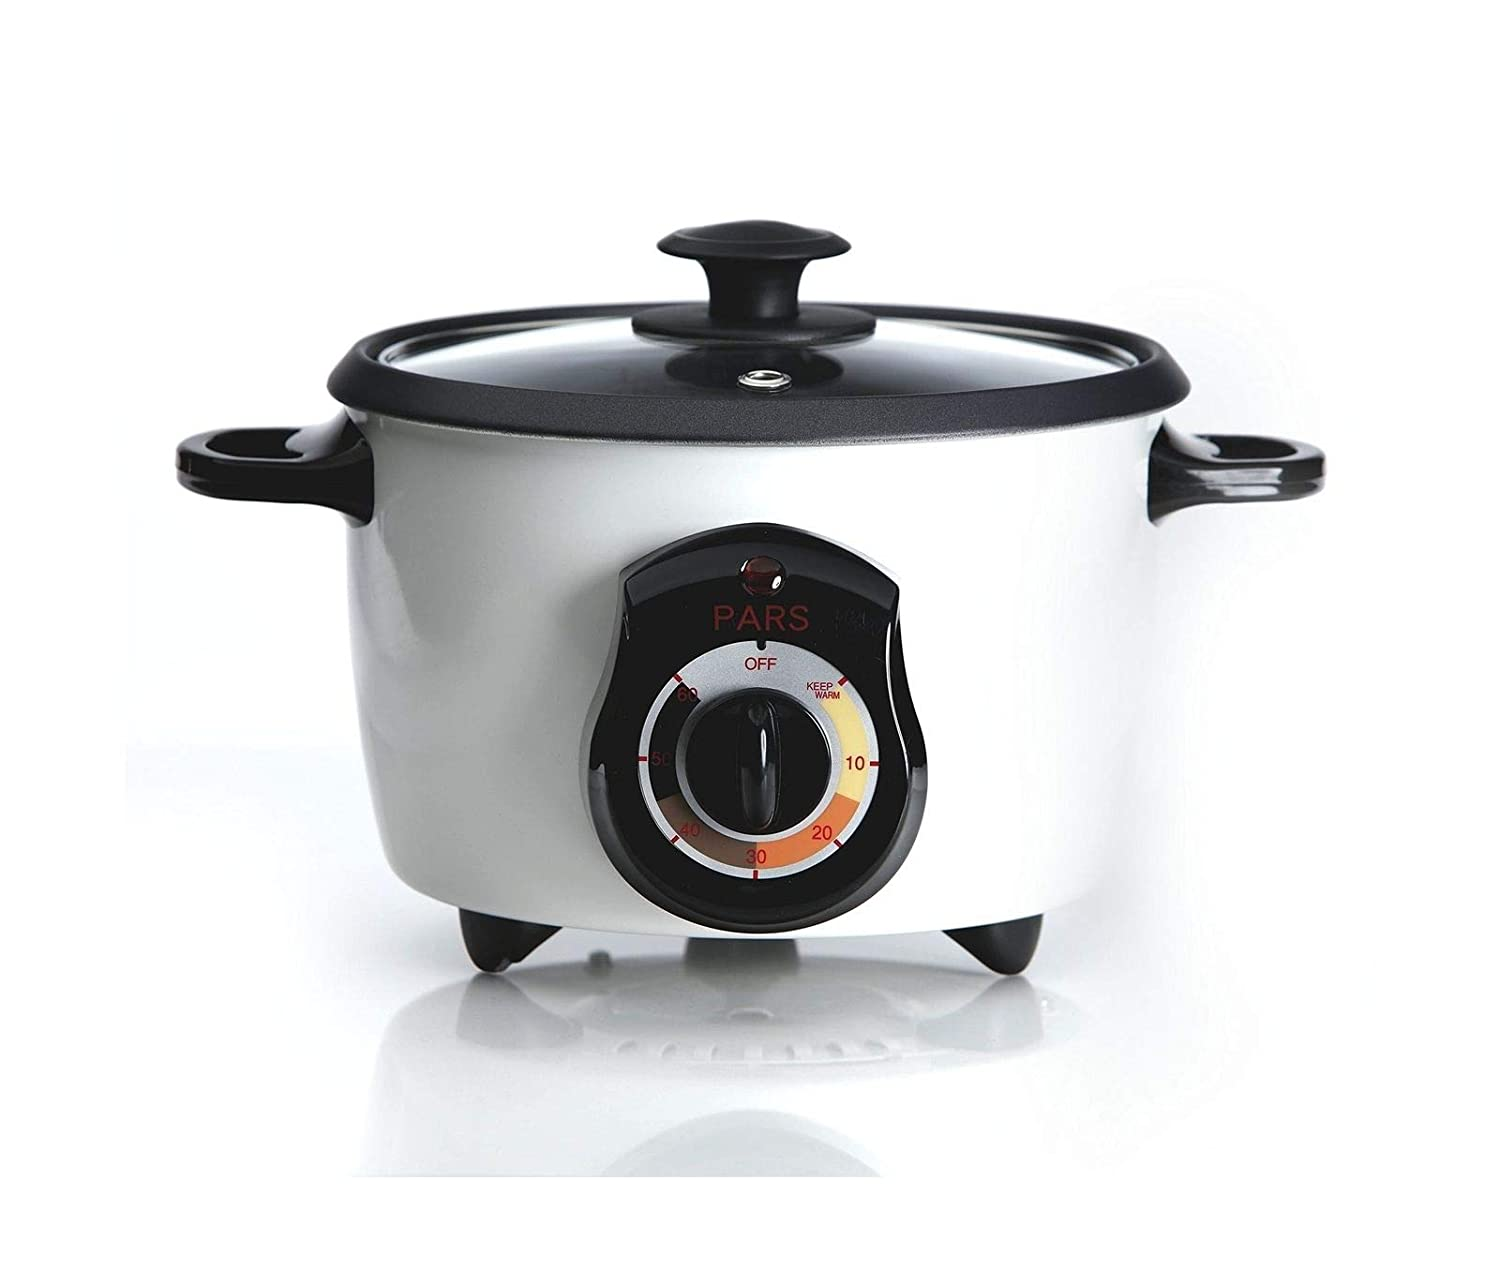 Mami-Team Rice Cooker Cup Persian Specialty Rice Cooker 5 Cup Automatic Shut Off Keep Warm Function Non-Stick Teflon 110v Home Use Size 10.3 x 7.7 x 10.2 inches